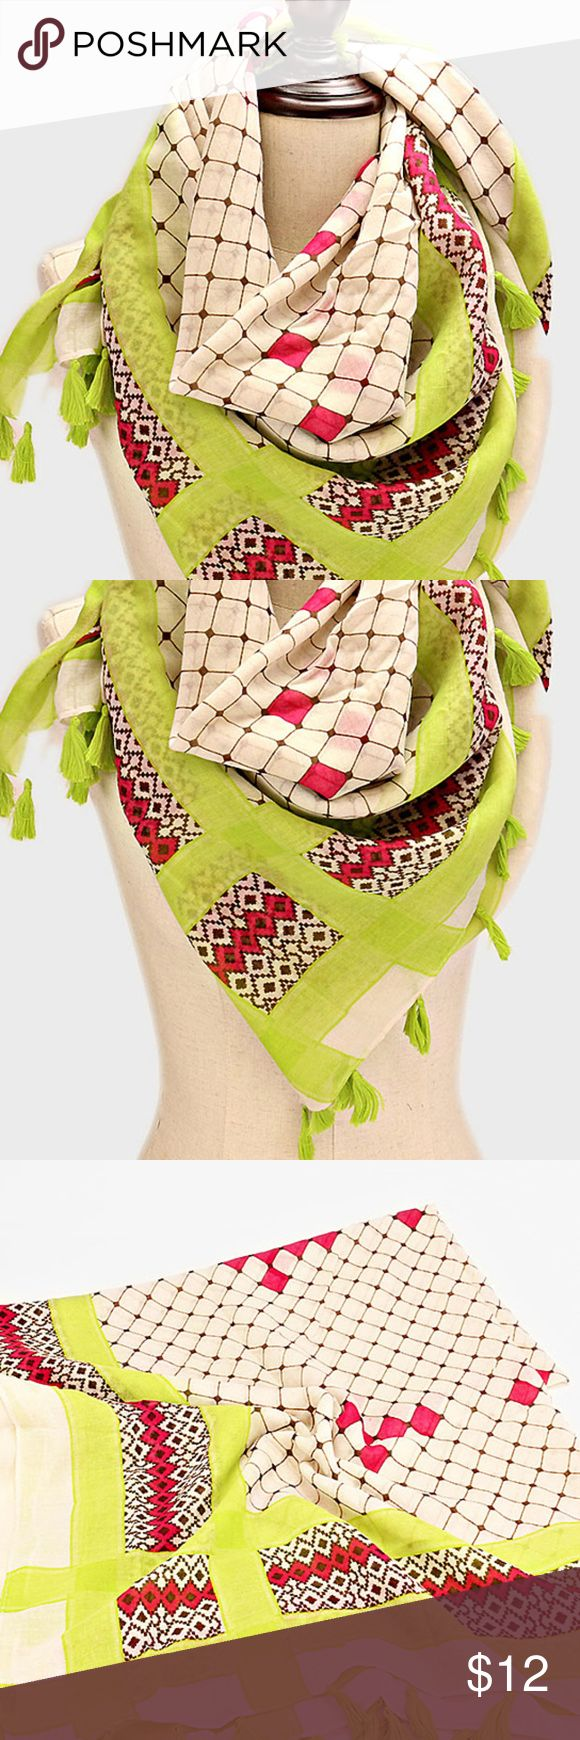 "Womens Scarves Aztec Print Tassel Scarf Green Color: Green    Theme: Aztec, Tassel   Size: 40"" W, 64"" L Material: Polyester Weight (lbs.):0.3 Accessories Scarves & Wraps"